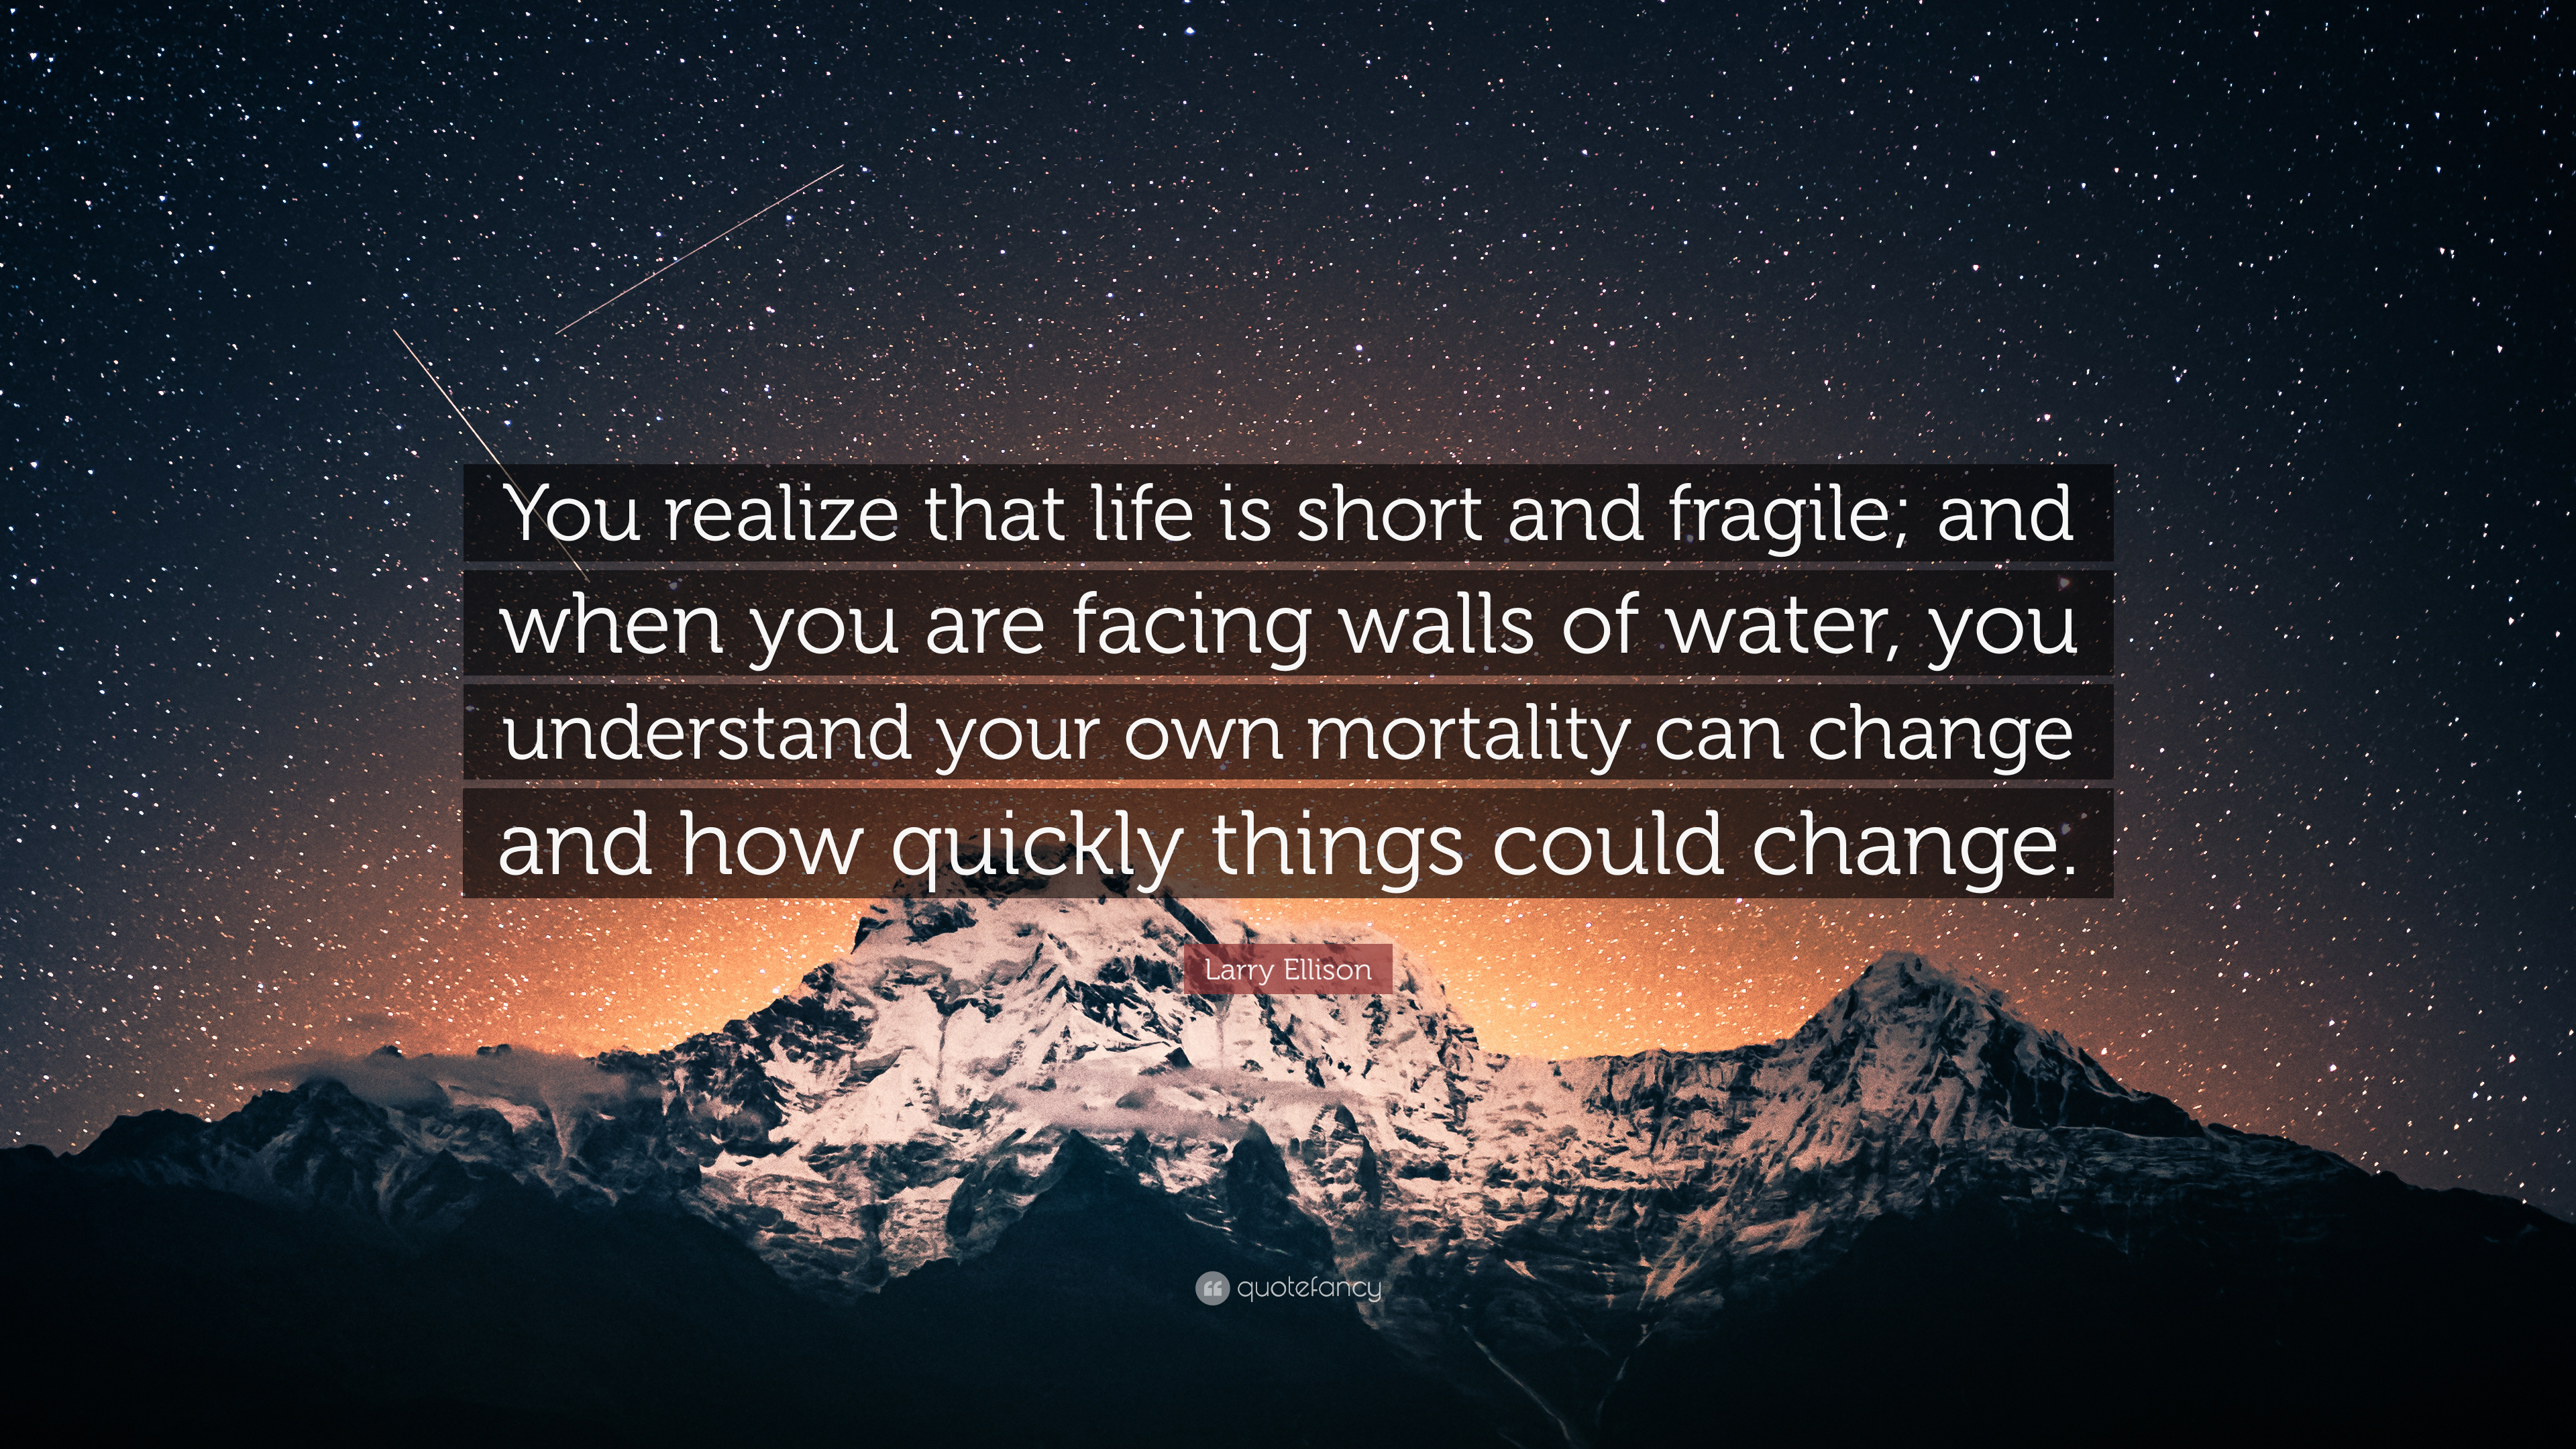 Larry Ellison Quote You Realize That Life Is Short And Fragile And When You Are Facing Walls Of Water You Understand Your Own Mortality Ca 10 Wallpapers Quotefancy